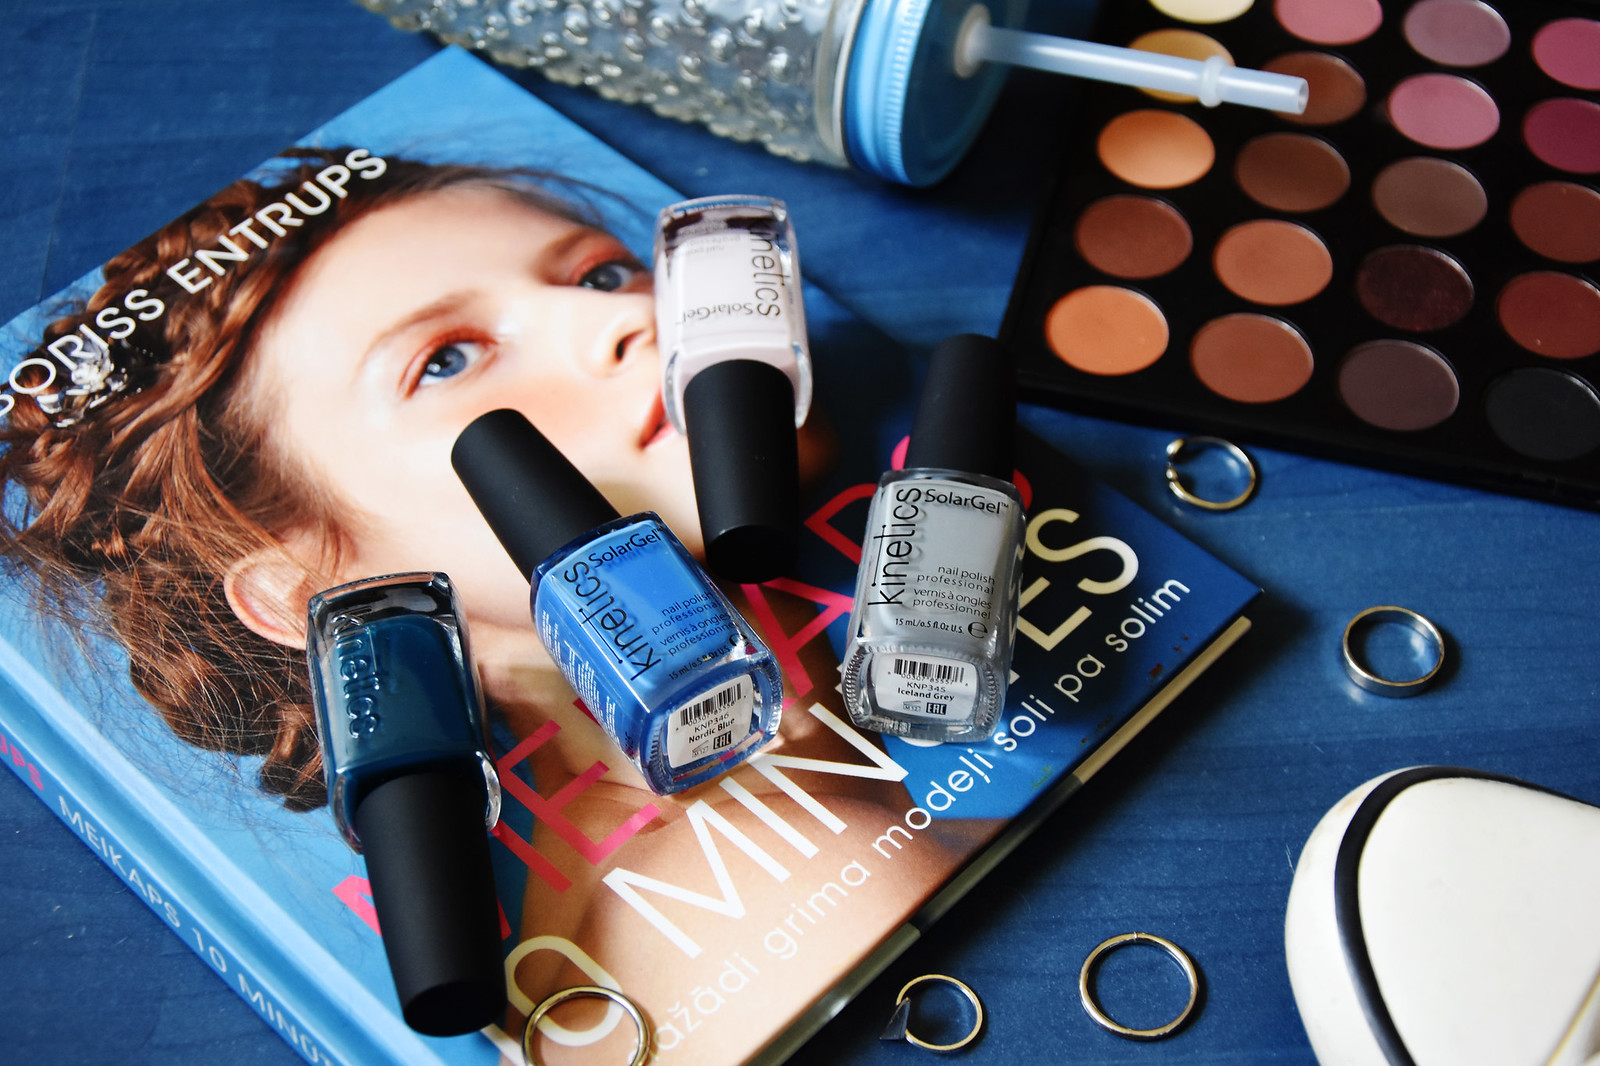 Nordic Blue collection Kinetics